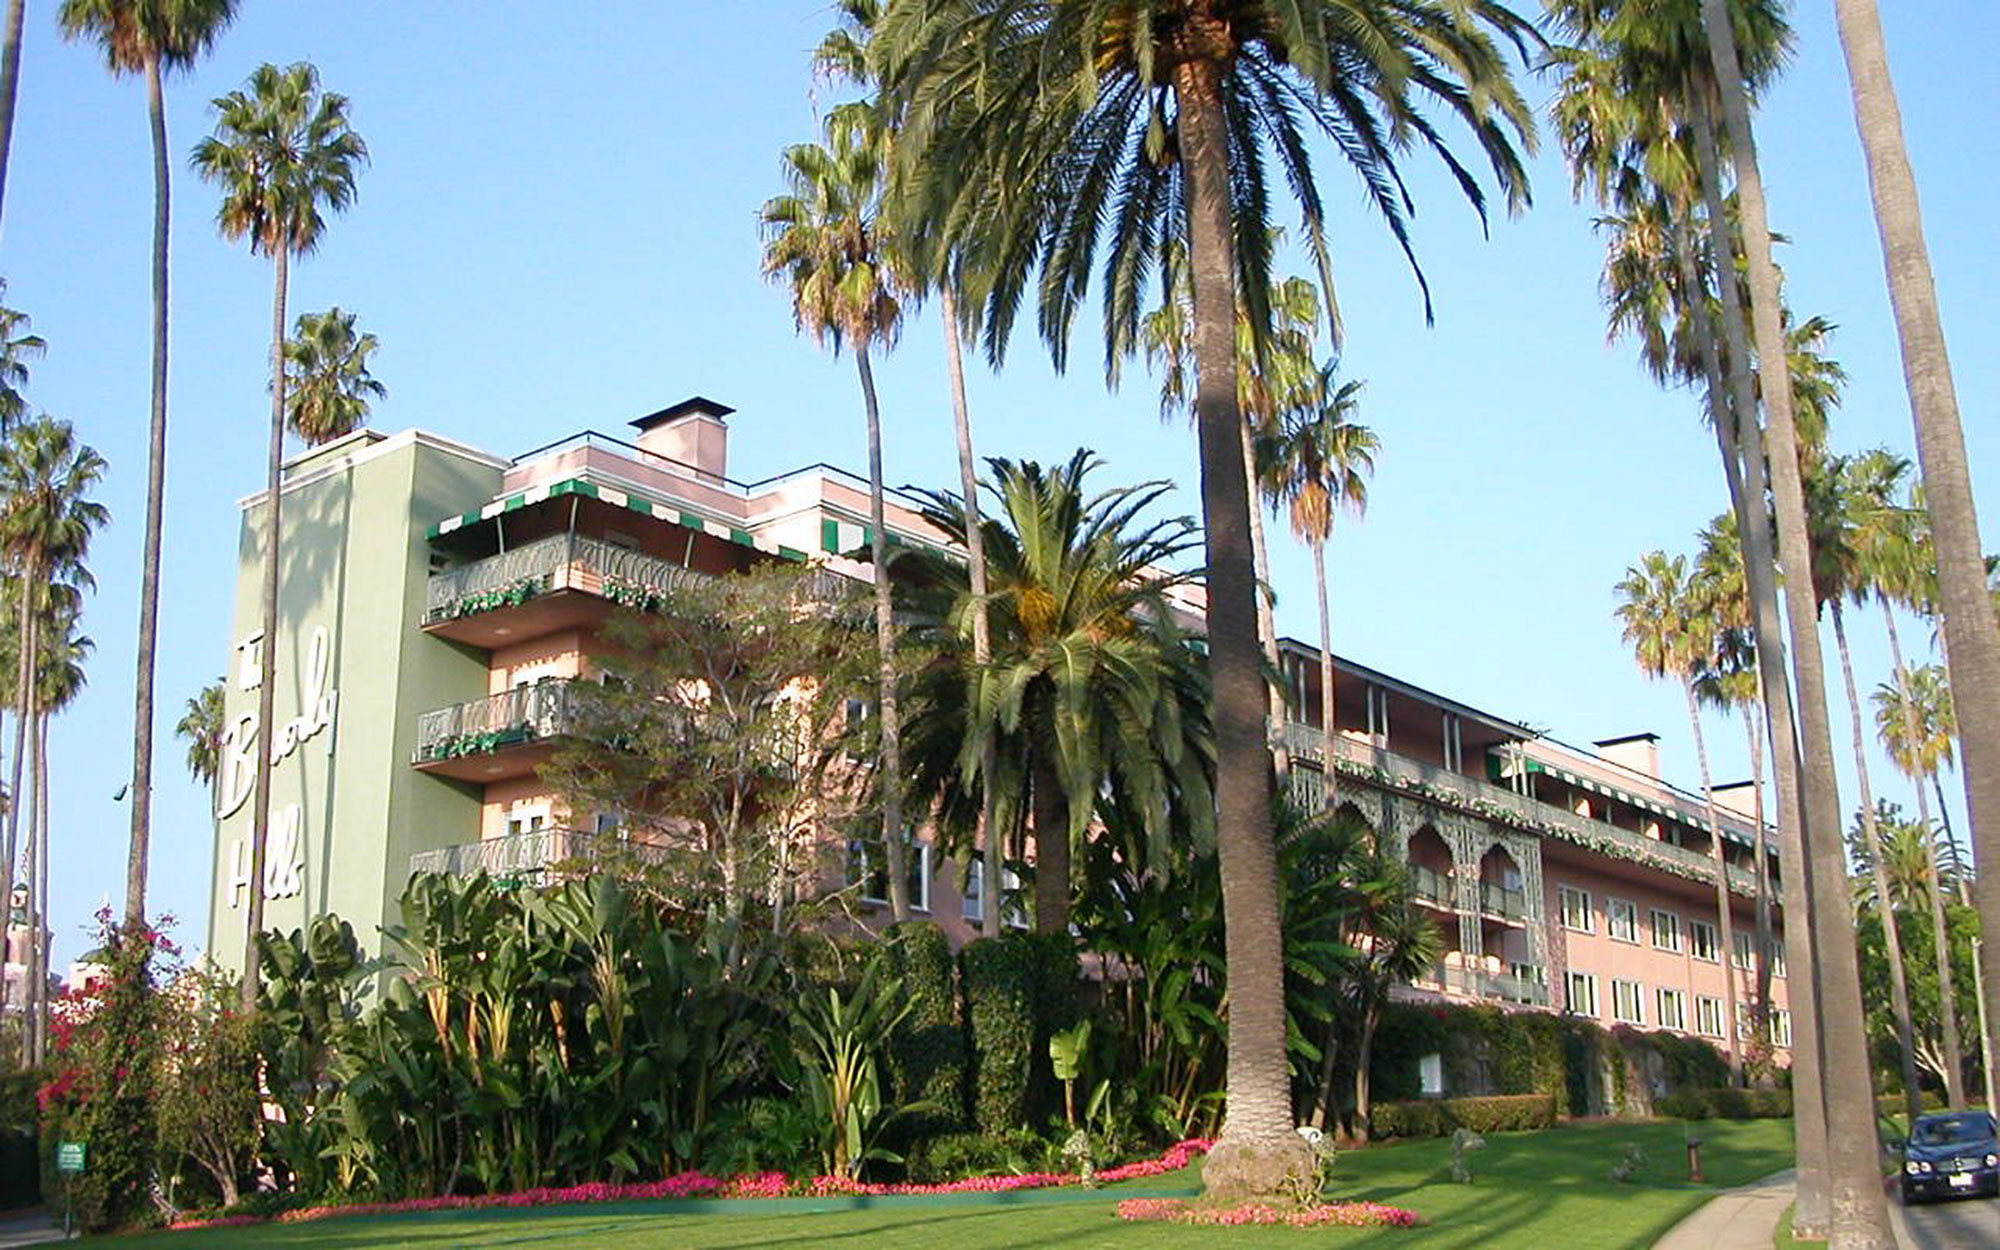 No. 9: The Beverly Hills Hotel